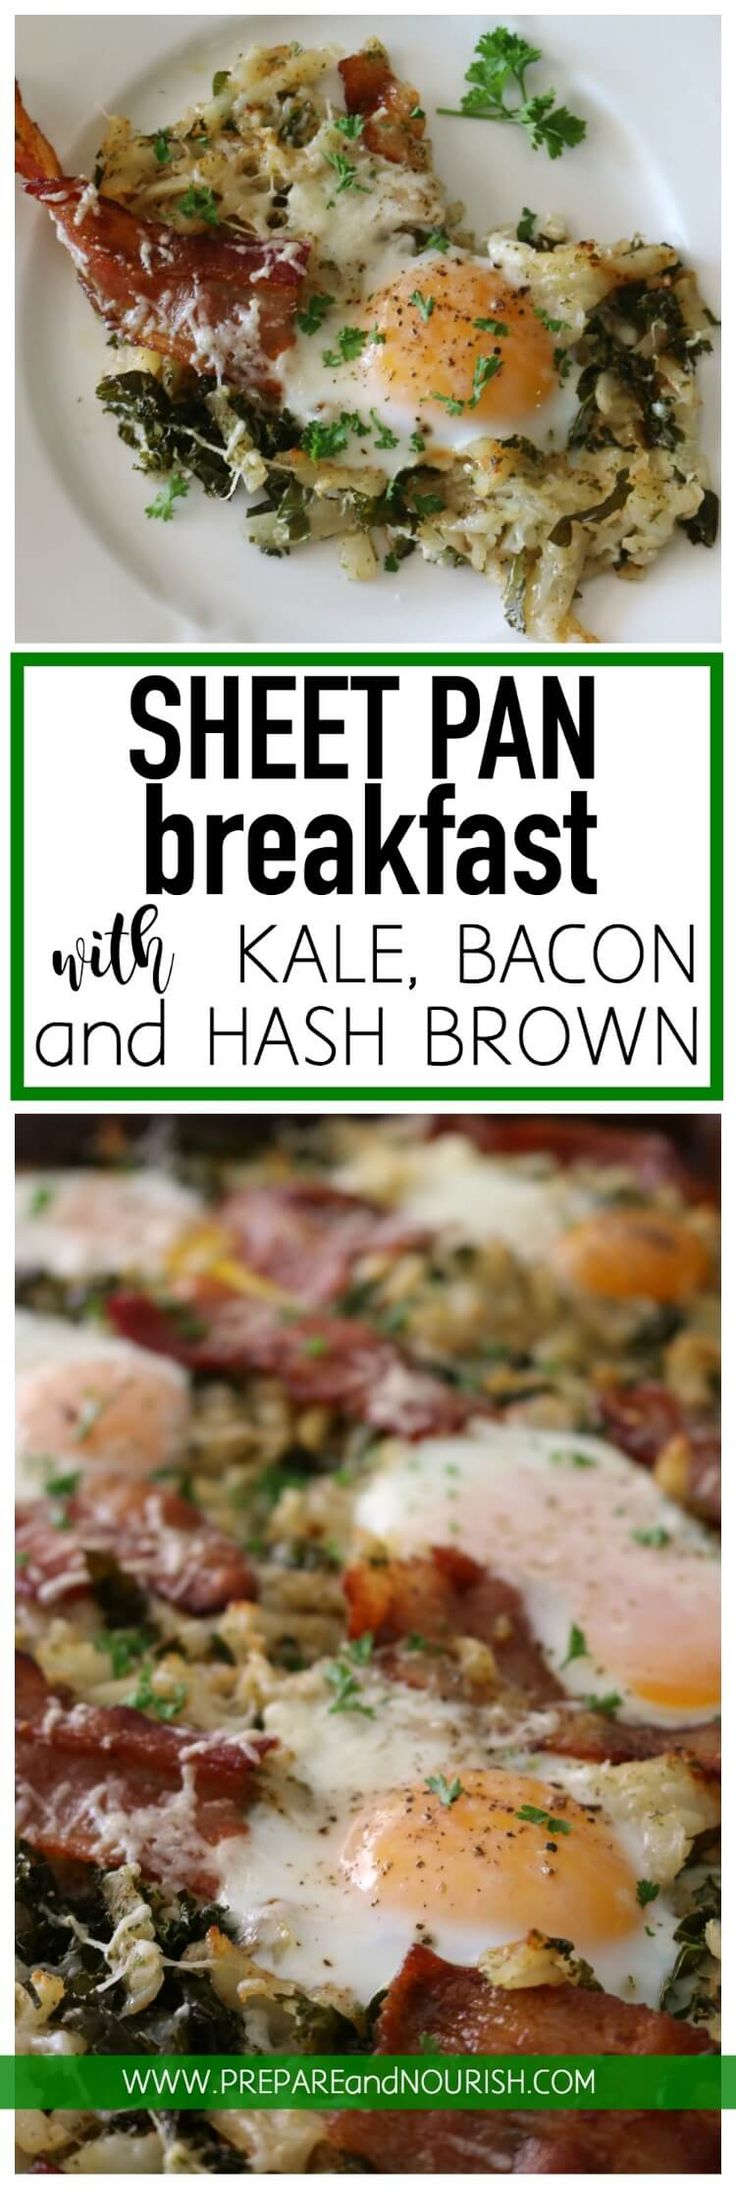 Sheet Pan Breakfast with Kale, Bacon & Hash Brown - your favorite comfort food ingredients with added nutrition from kale made easily and hassle free on a sheet pan in the oven.   via @preparenourish